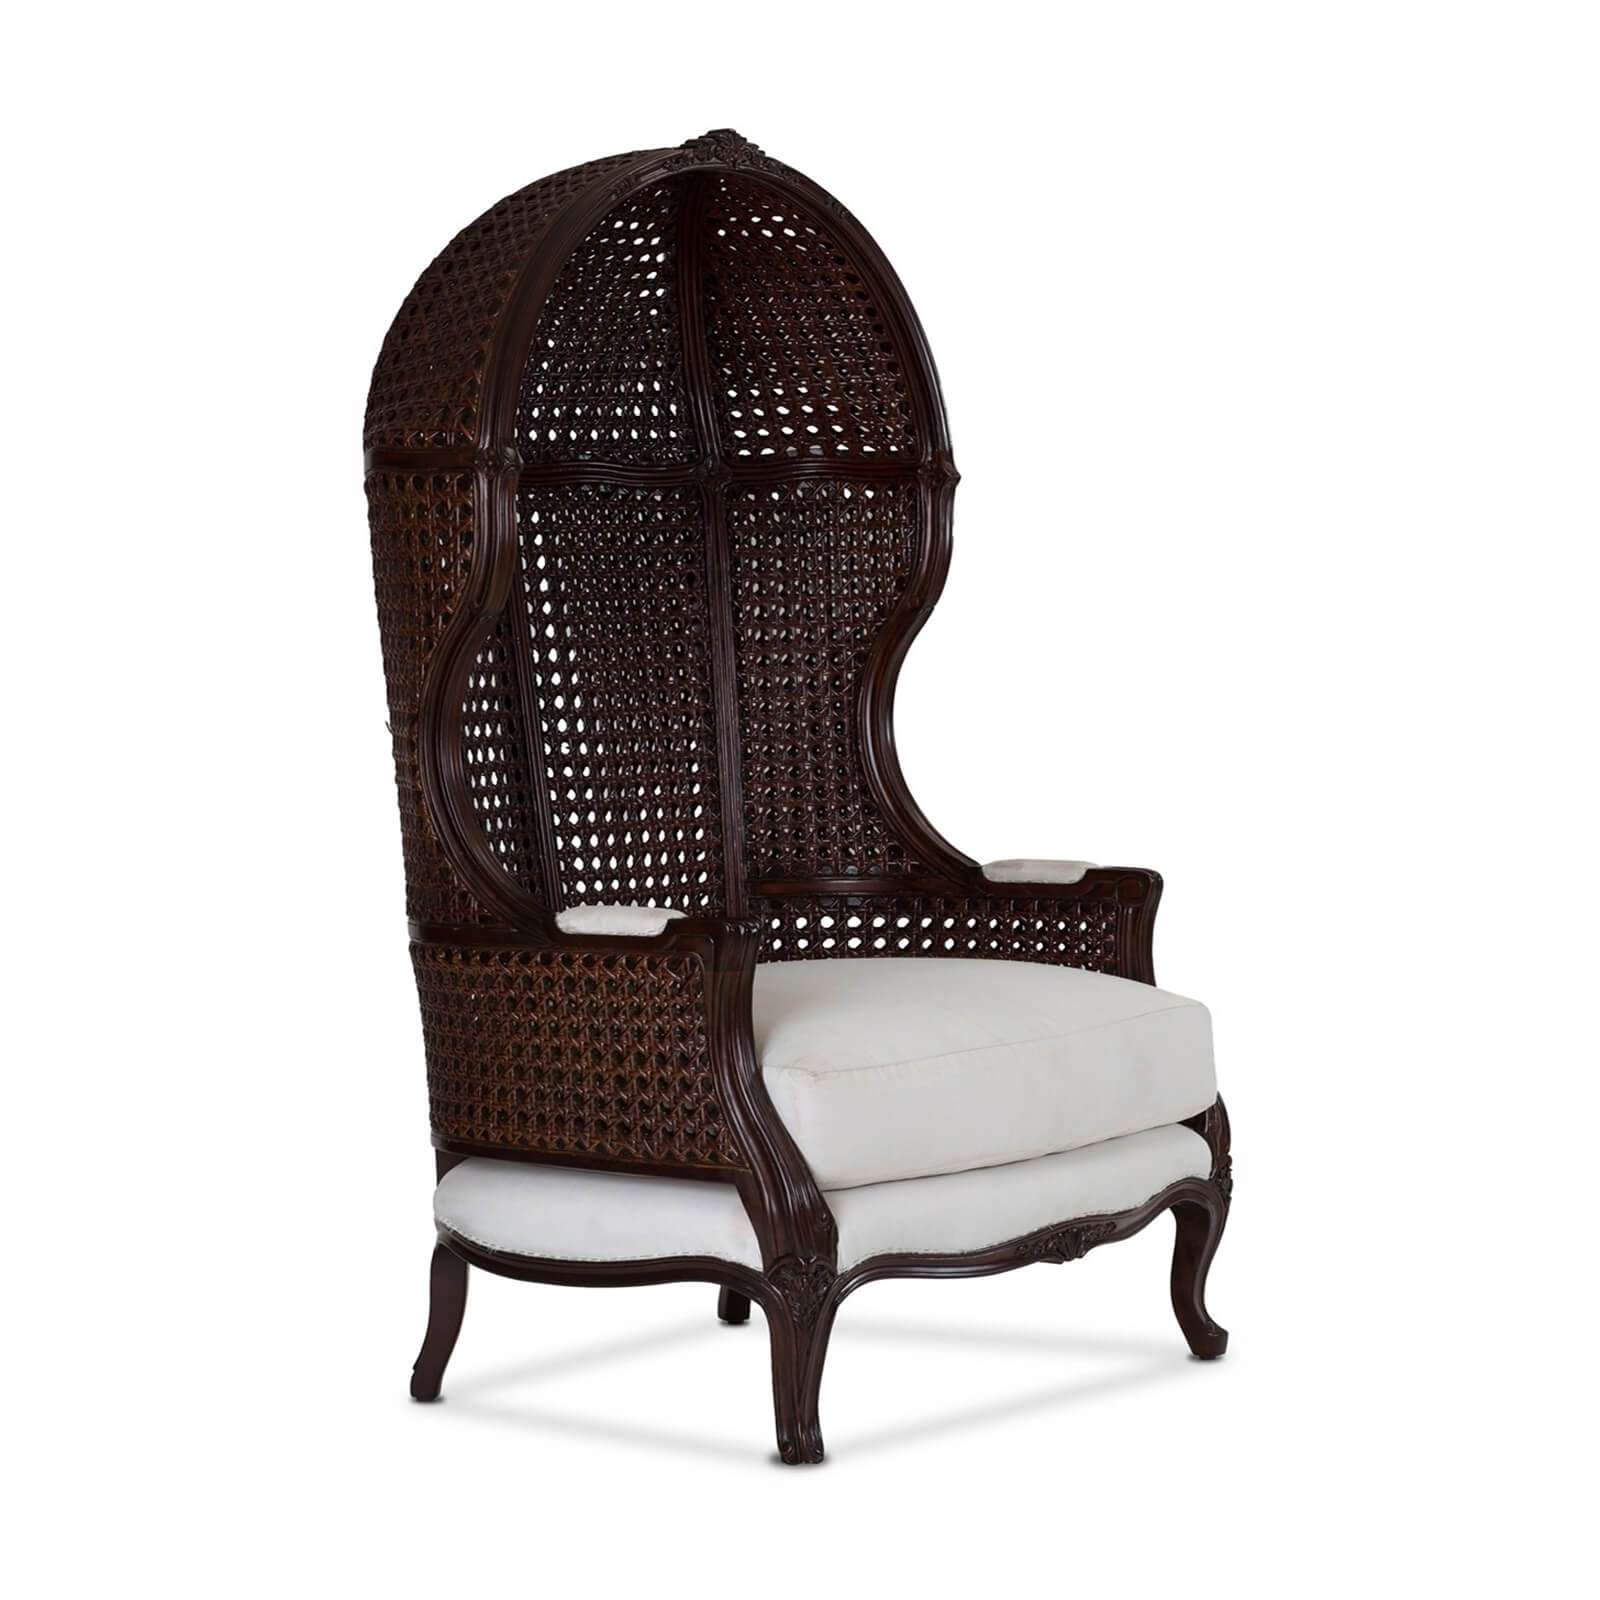 CHISWICK BUTLERS CHAIR 001 - STUART MEMBERY HOME COLLECTION